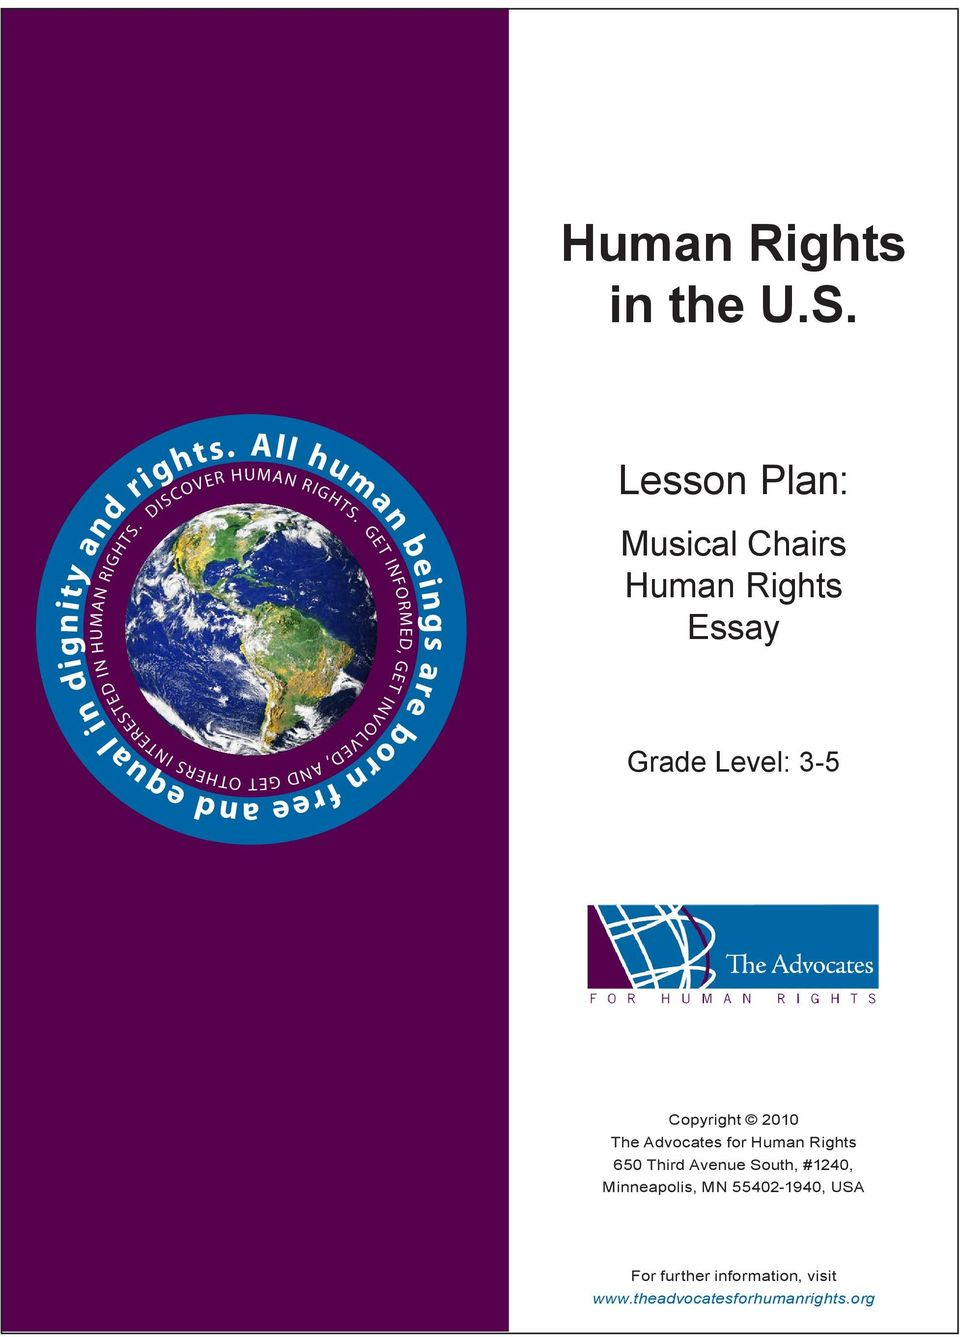 Musical Chairs Human Rights Essay Grade Level: 3-5 Copyright 2010 The